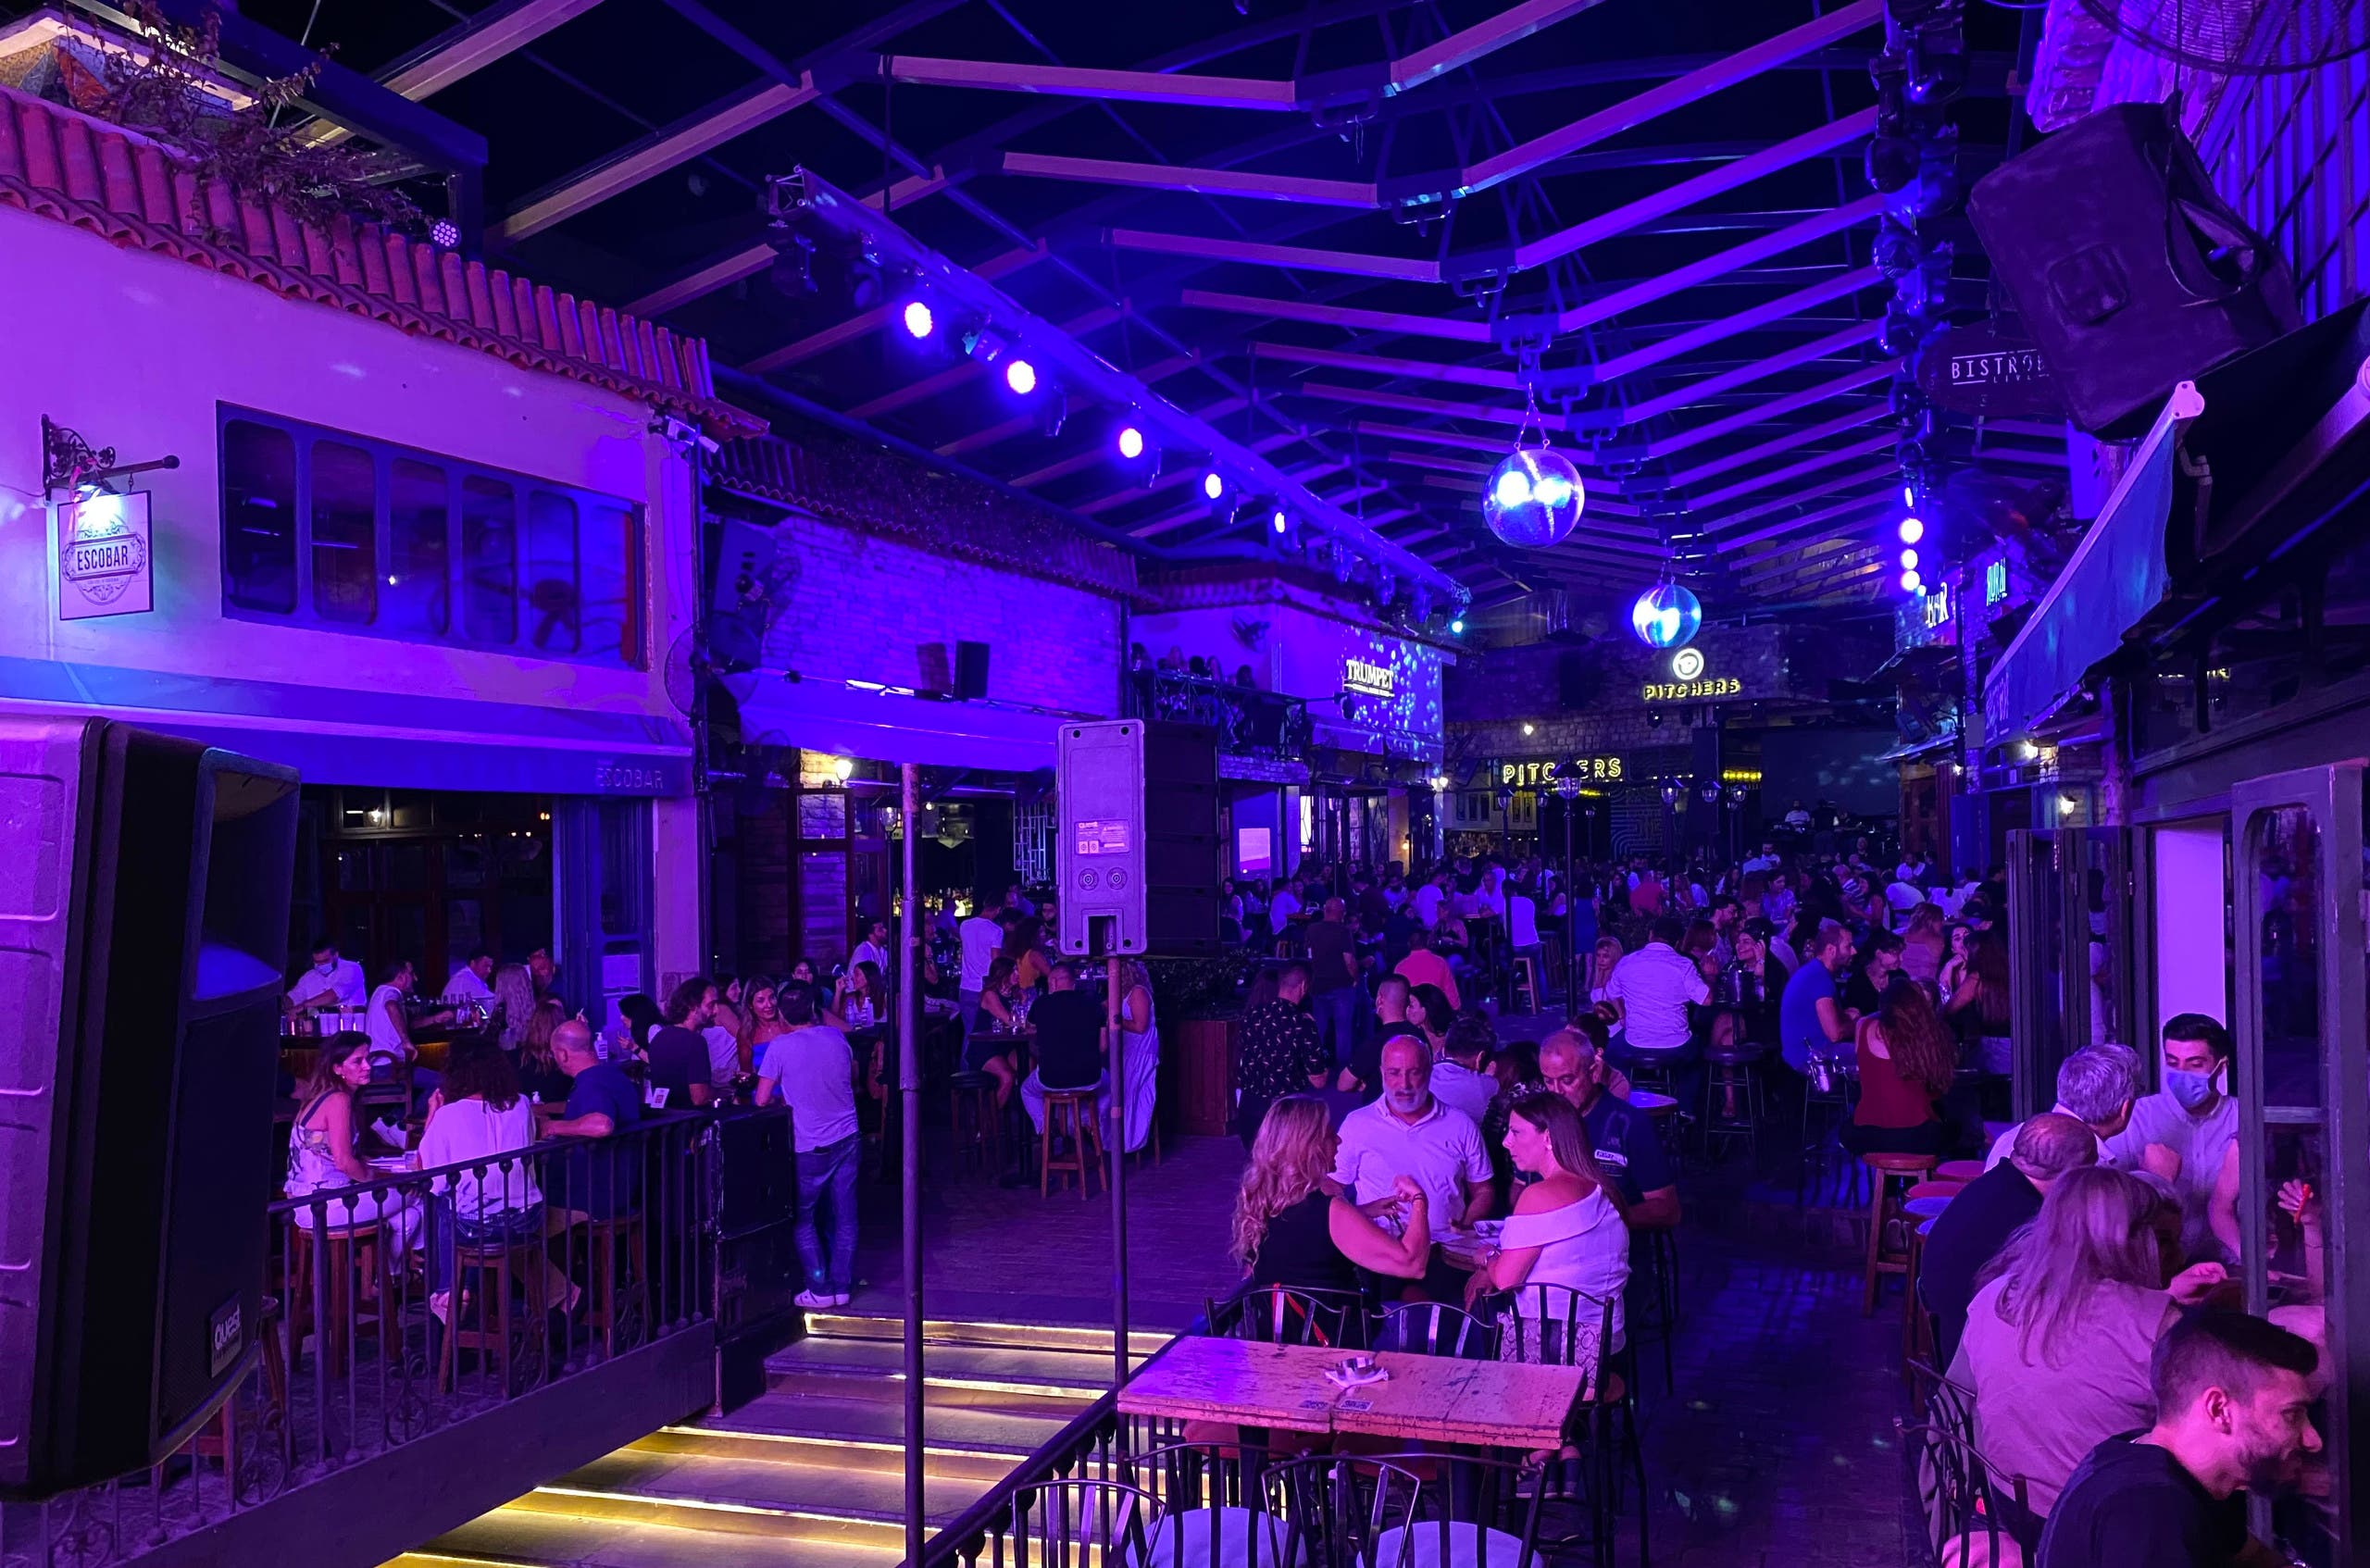 People having dinner and drinks in the area of Dbayeh on Thursday, June 24. (Image: Vanessa Ghanem)